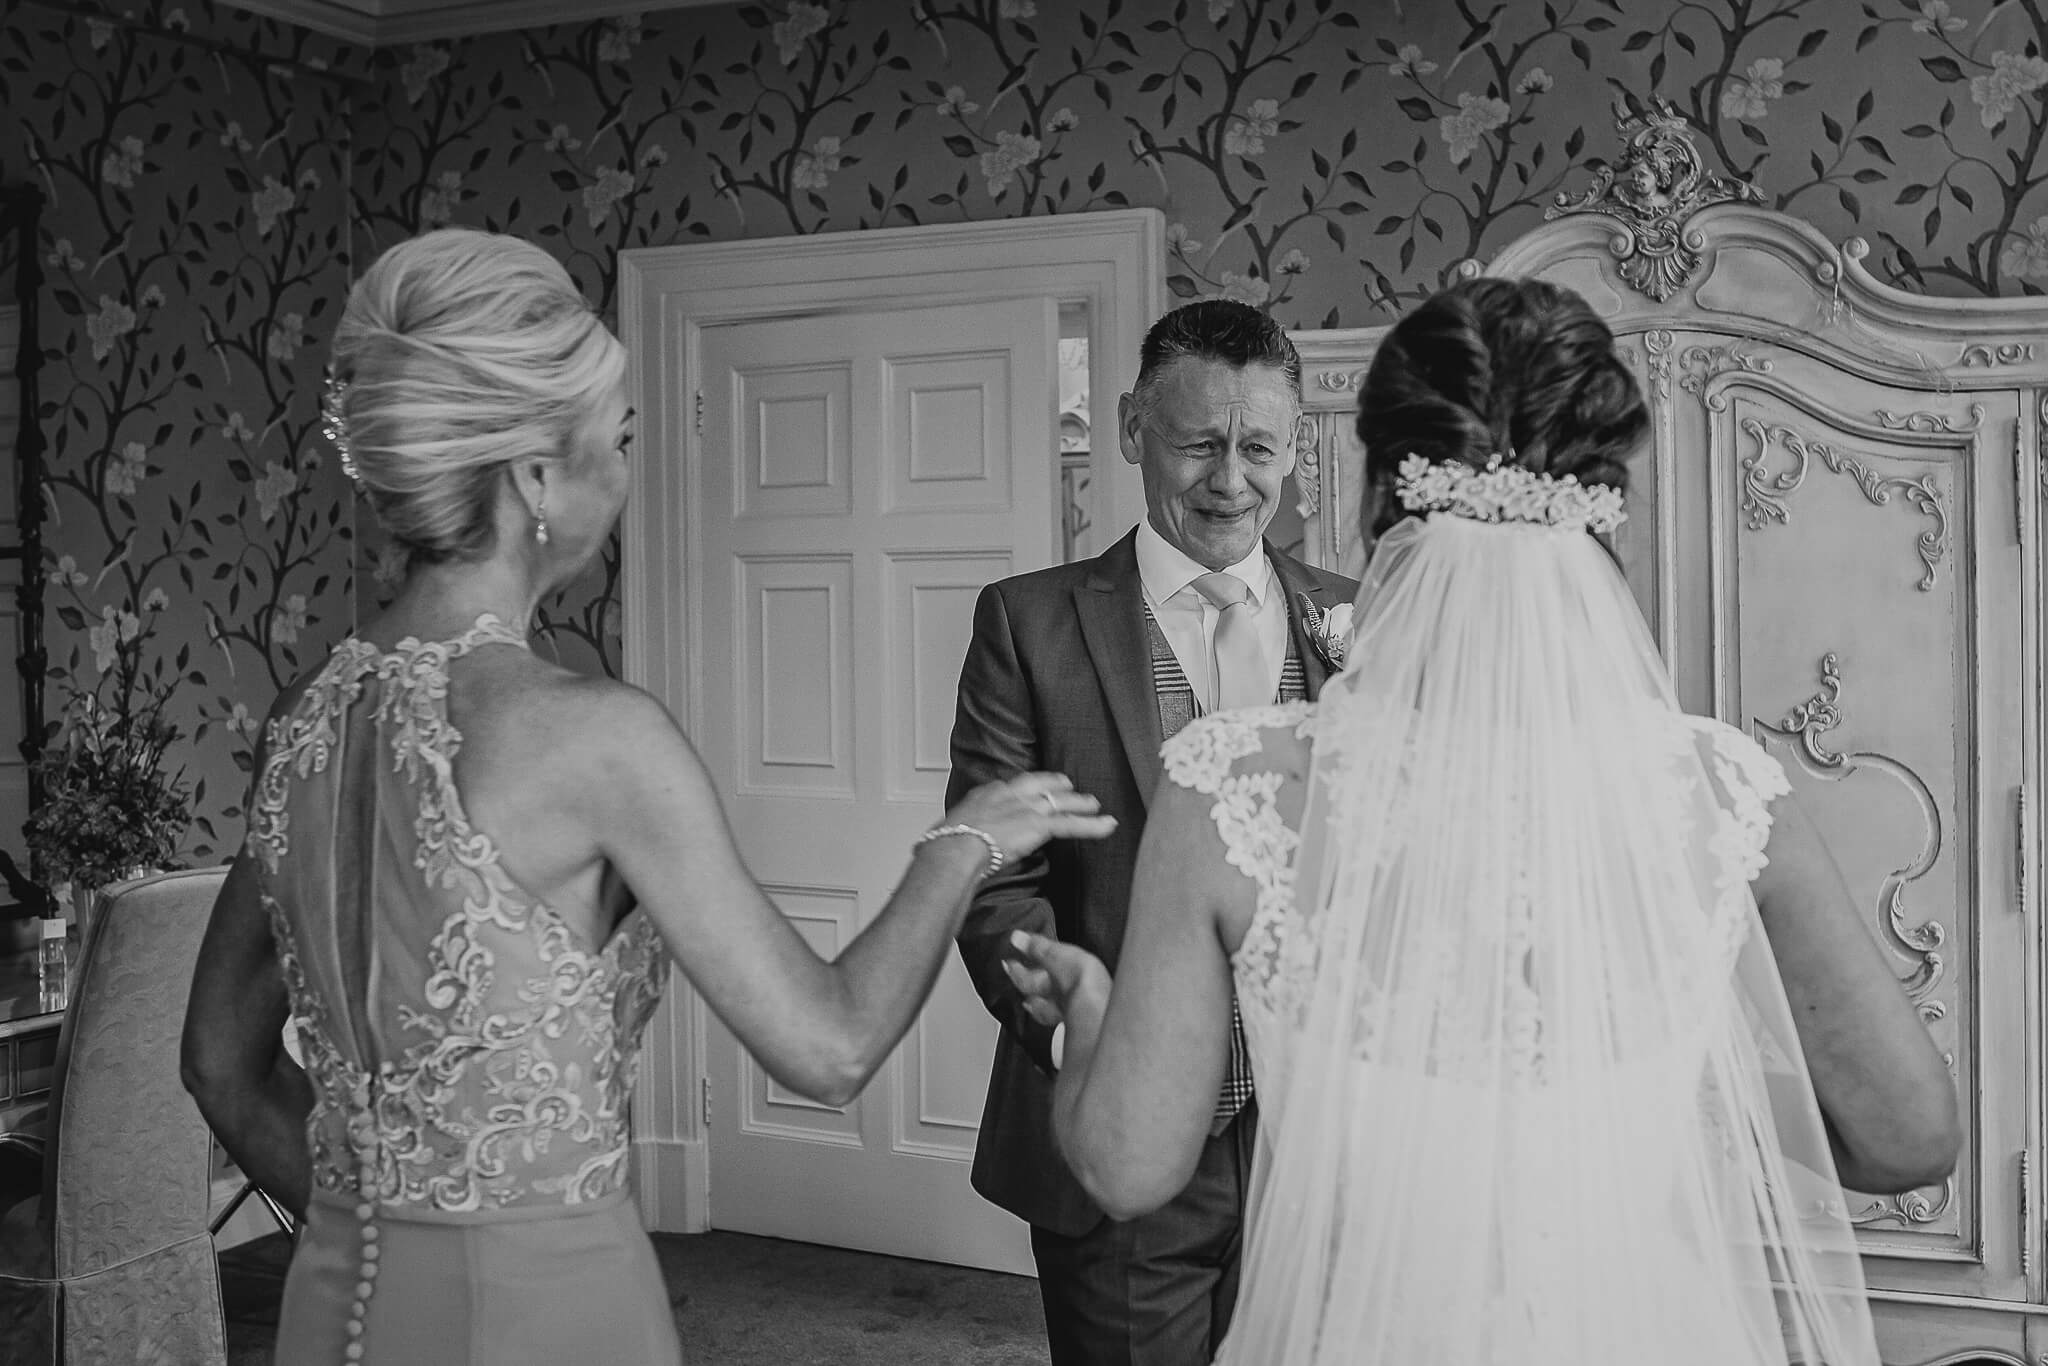 best-wedding-photographers-uk-europe-stanbury-photography-020